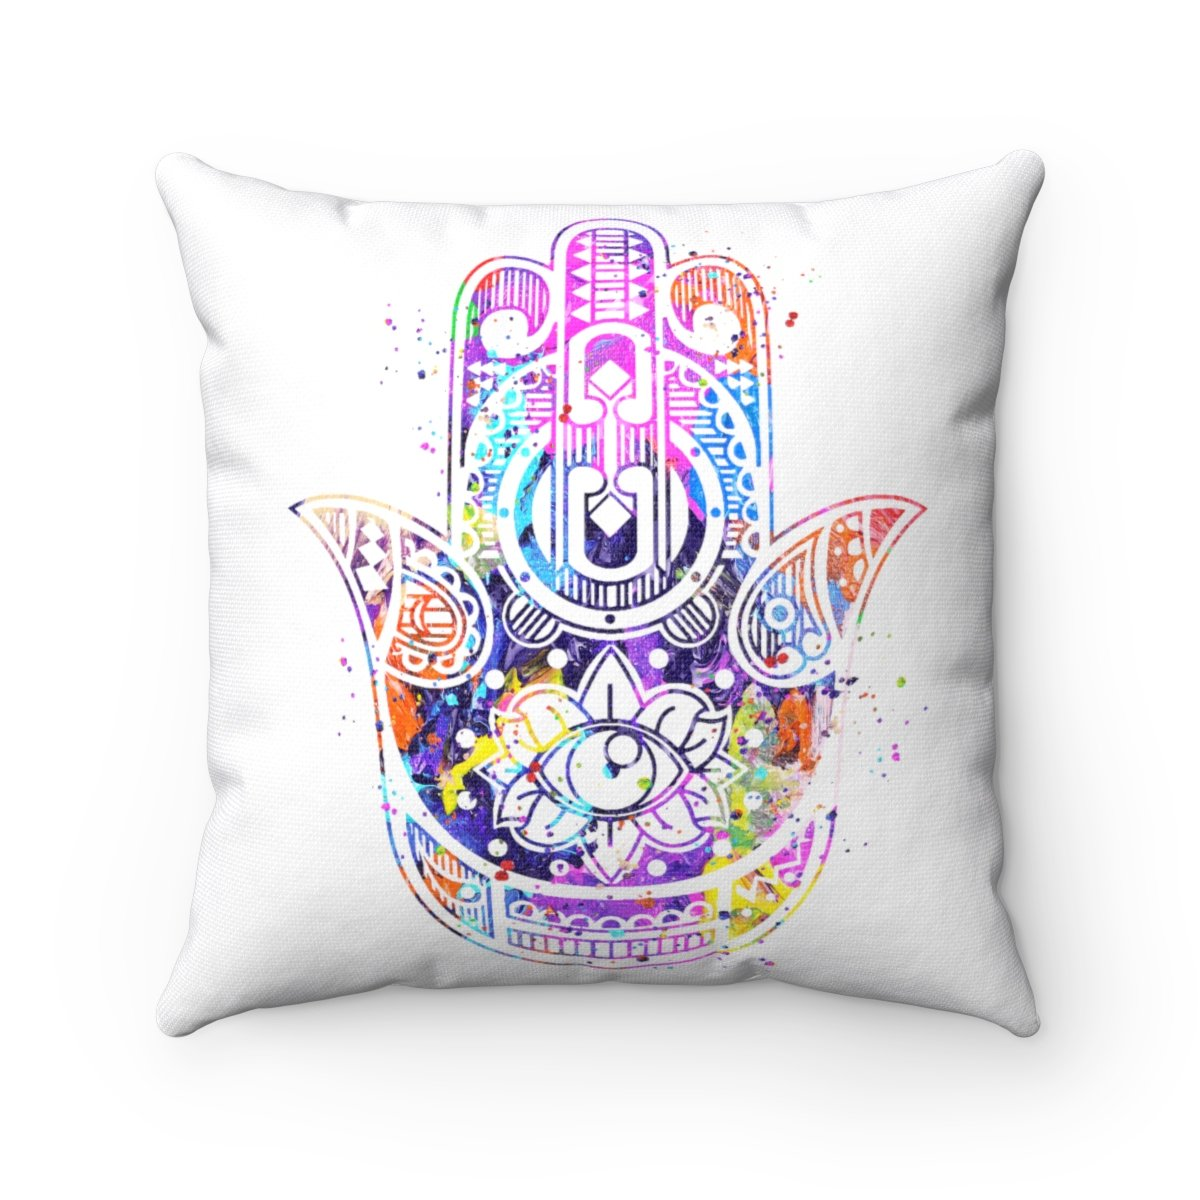 Esoteric/Religious Pillows